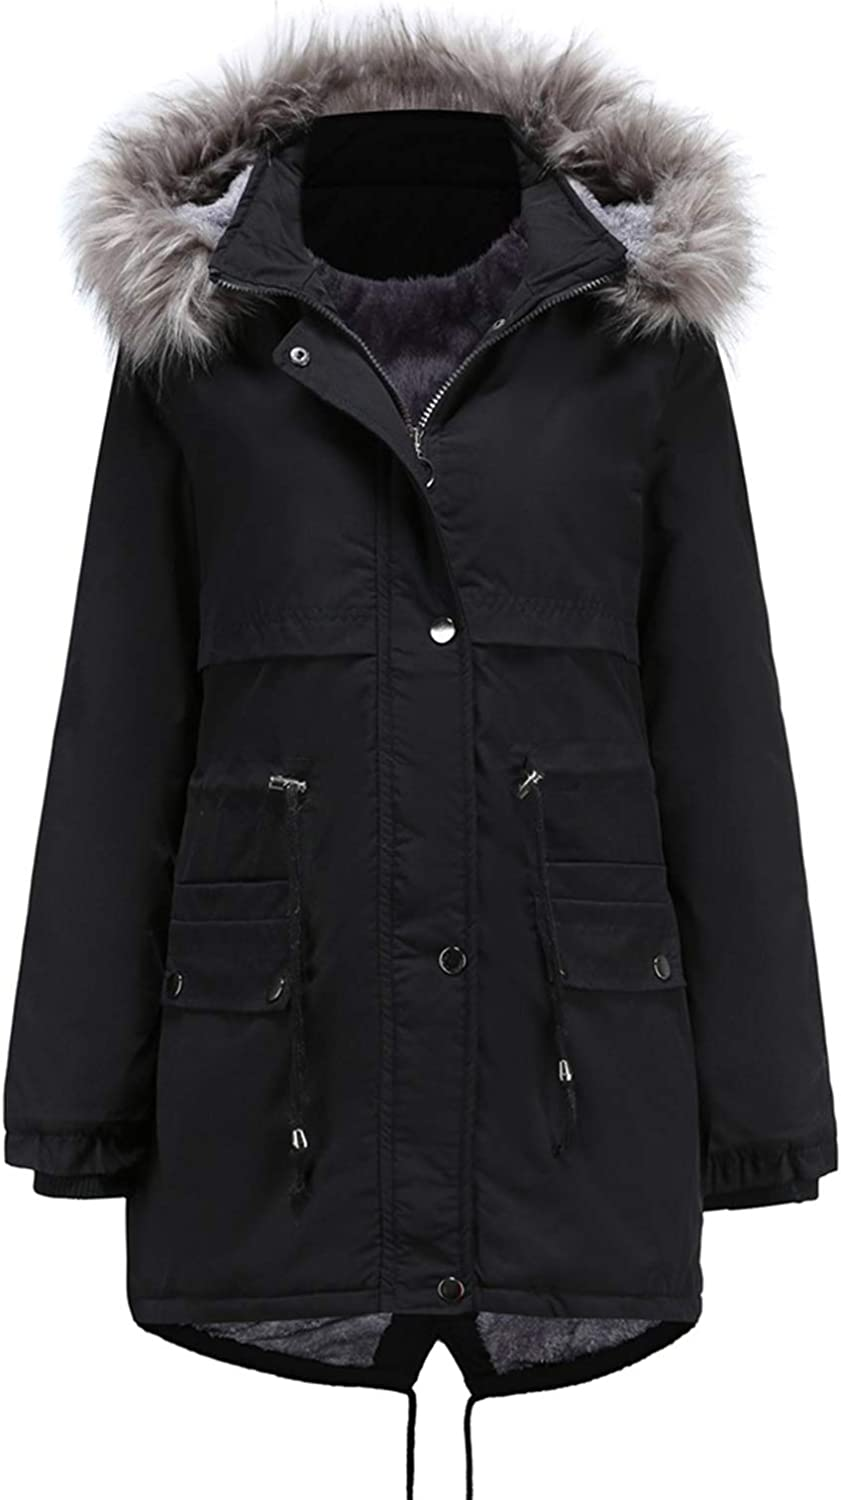 JHDESSLY Autumn and winter Plush Thick Long Coat Hooded Zipper Faux Fur Jacket for women